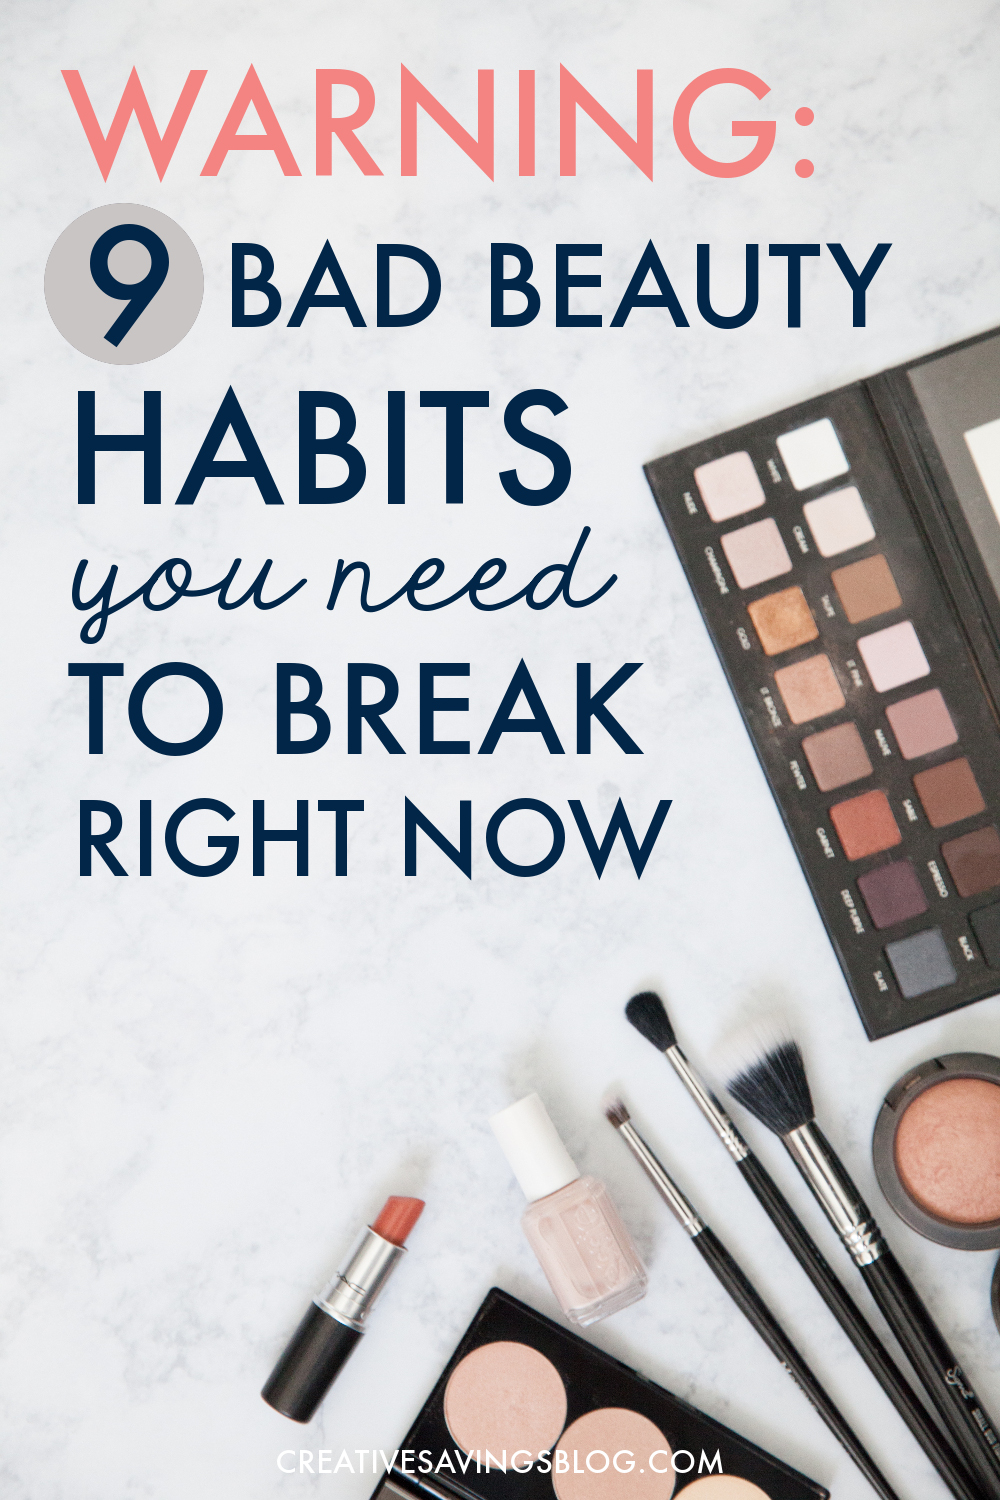 Are you unknowingly practicing one of these beauty no-no's? It's time to break bad habits for good with simple quick fixes you can easily commit to. In the long run, you'll not only fight signs of aging, you'll also look and feel a whole lot healthier! #badbeautyhabits #healthybeautyhabits #beautyhabits #mascaraexpires #noreally